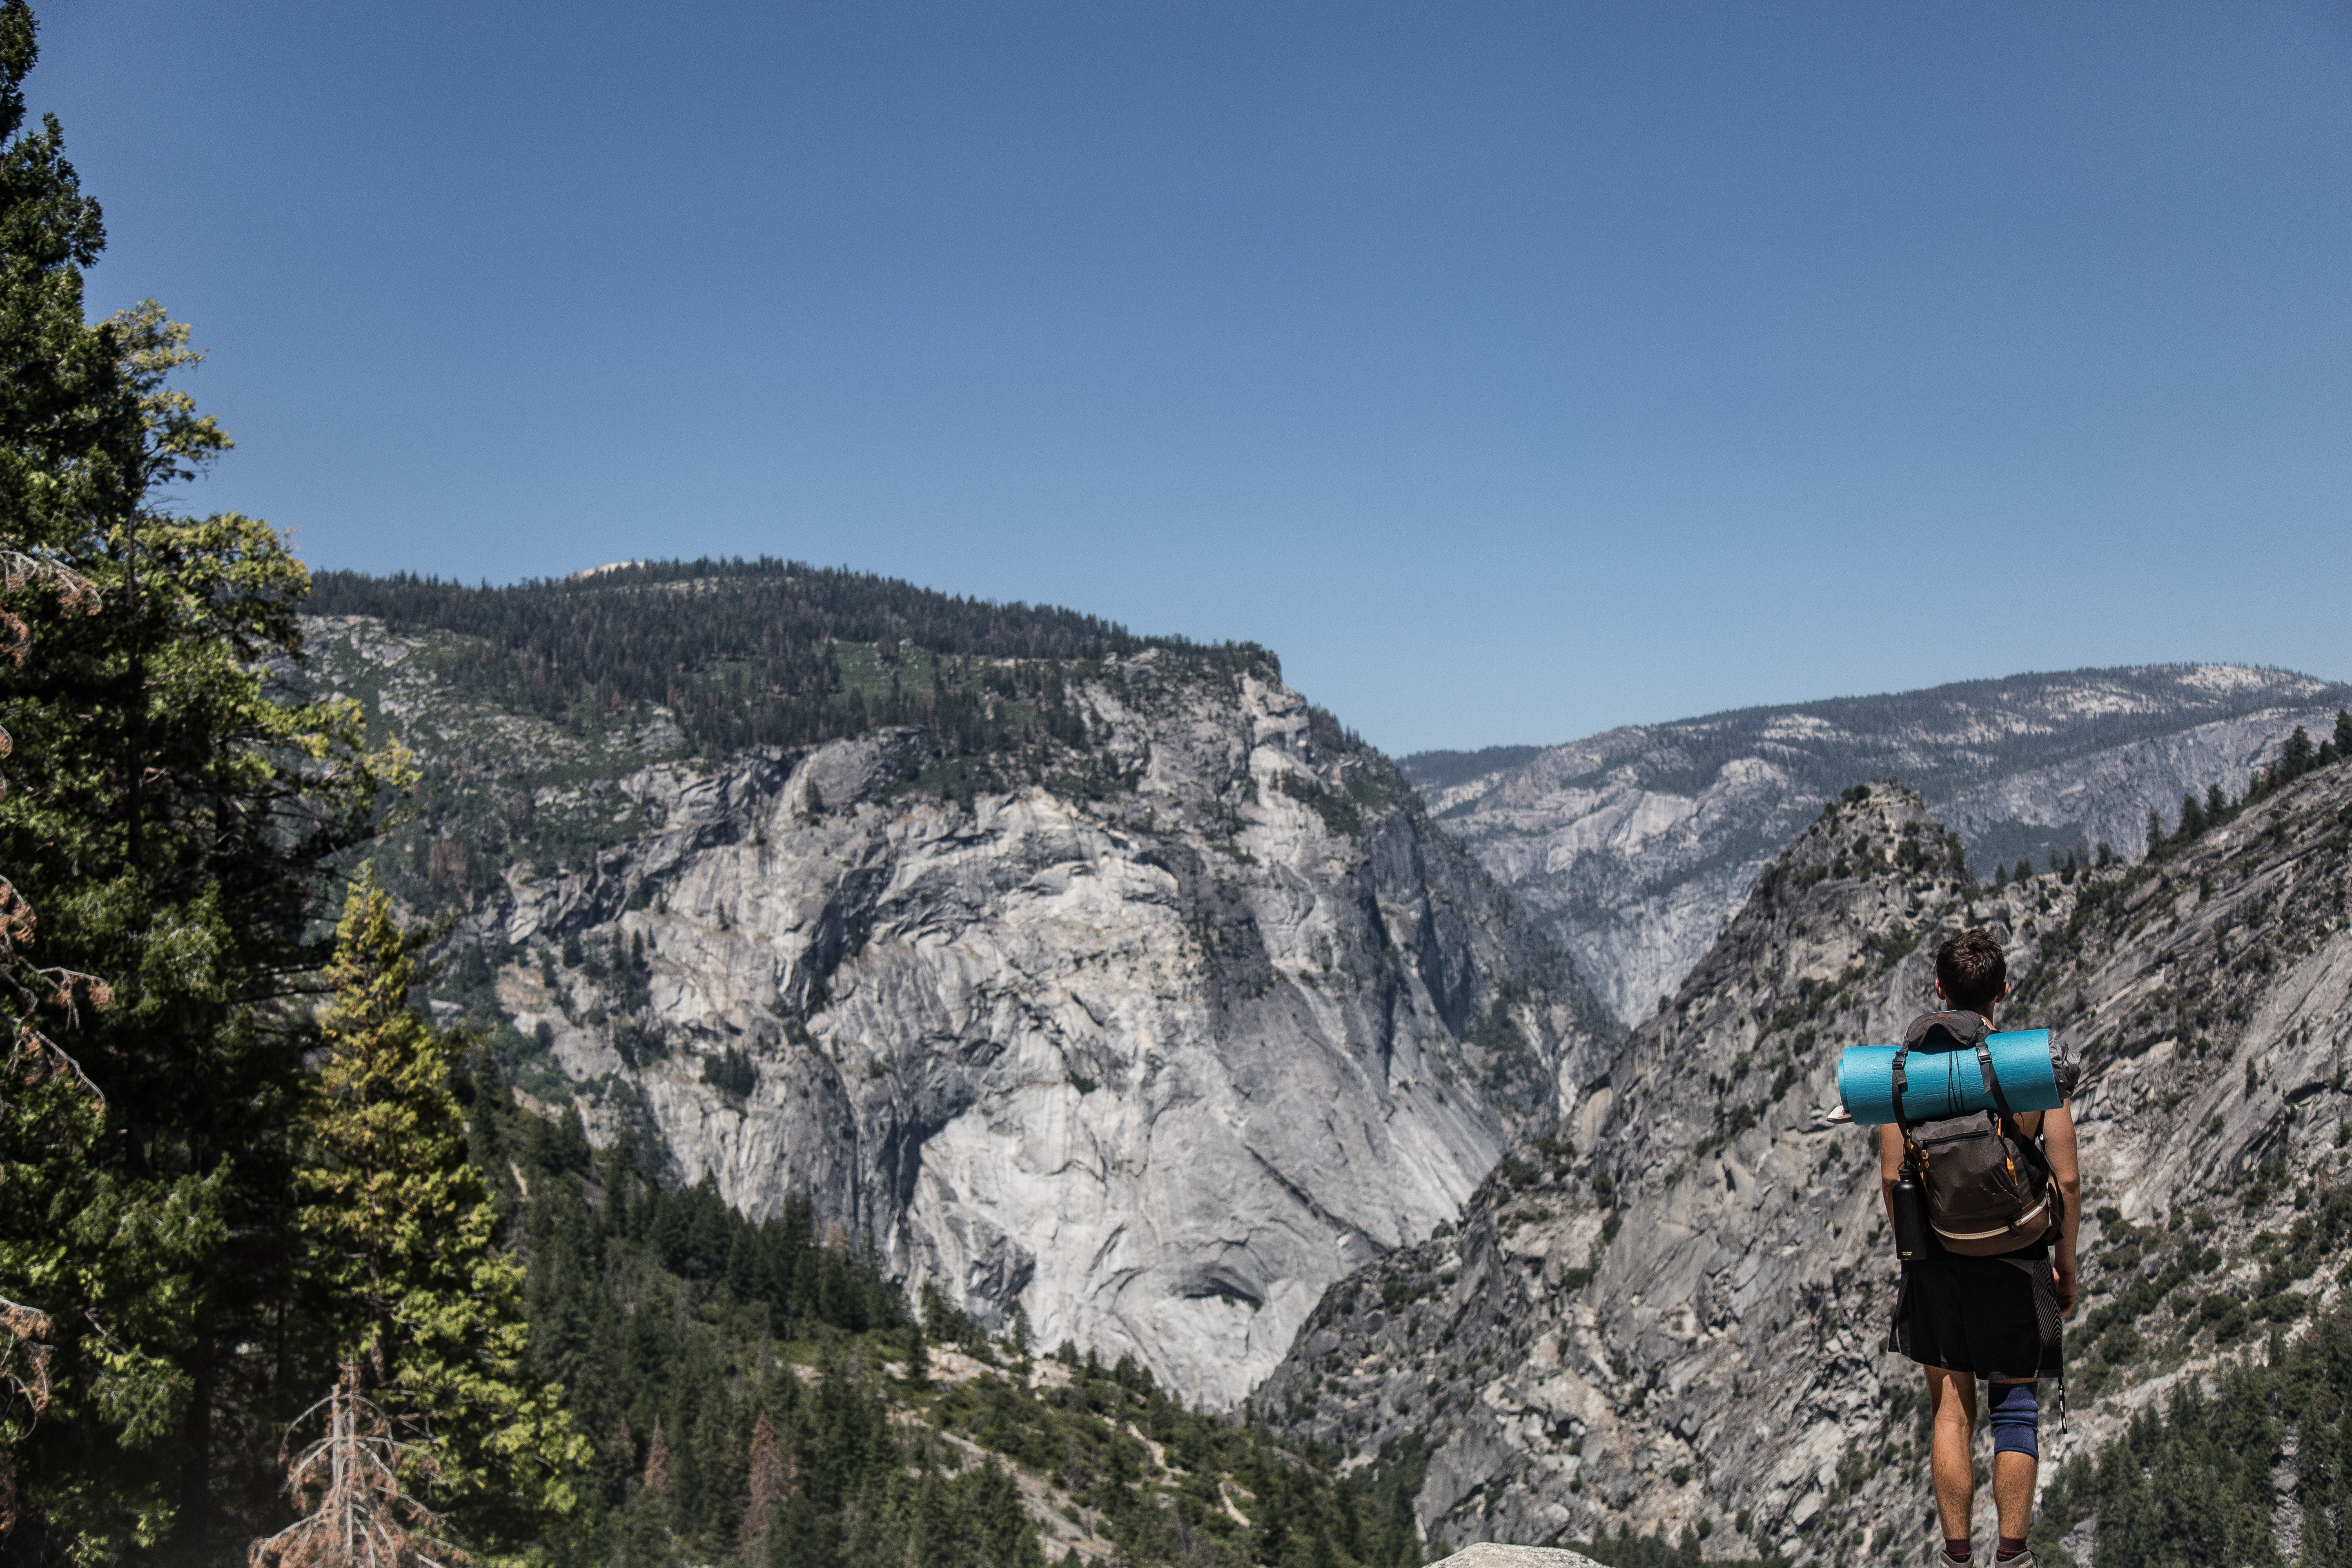 A male hiker with a backpack on a ledge in the Yosemite Valley